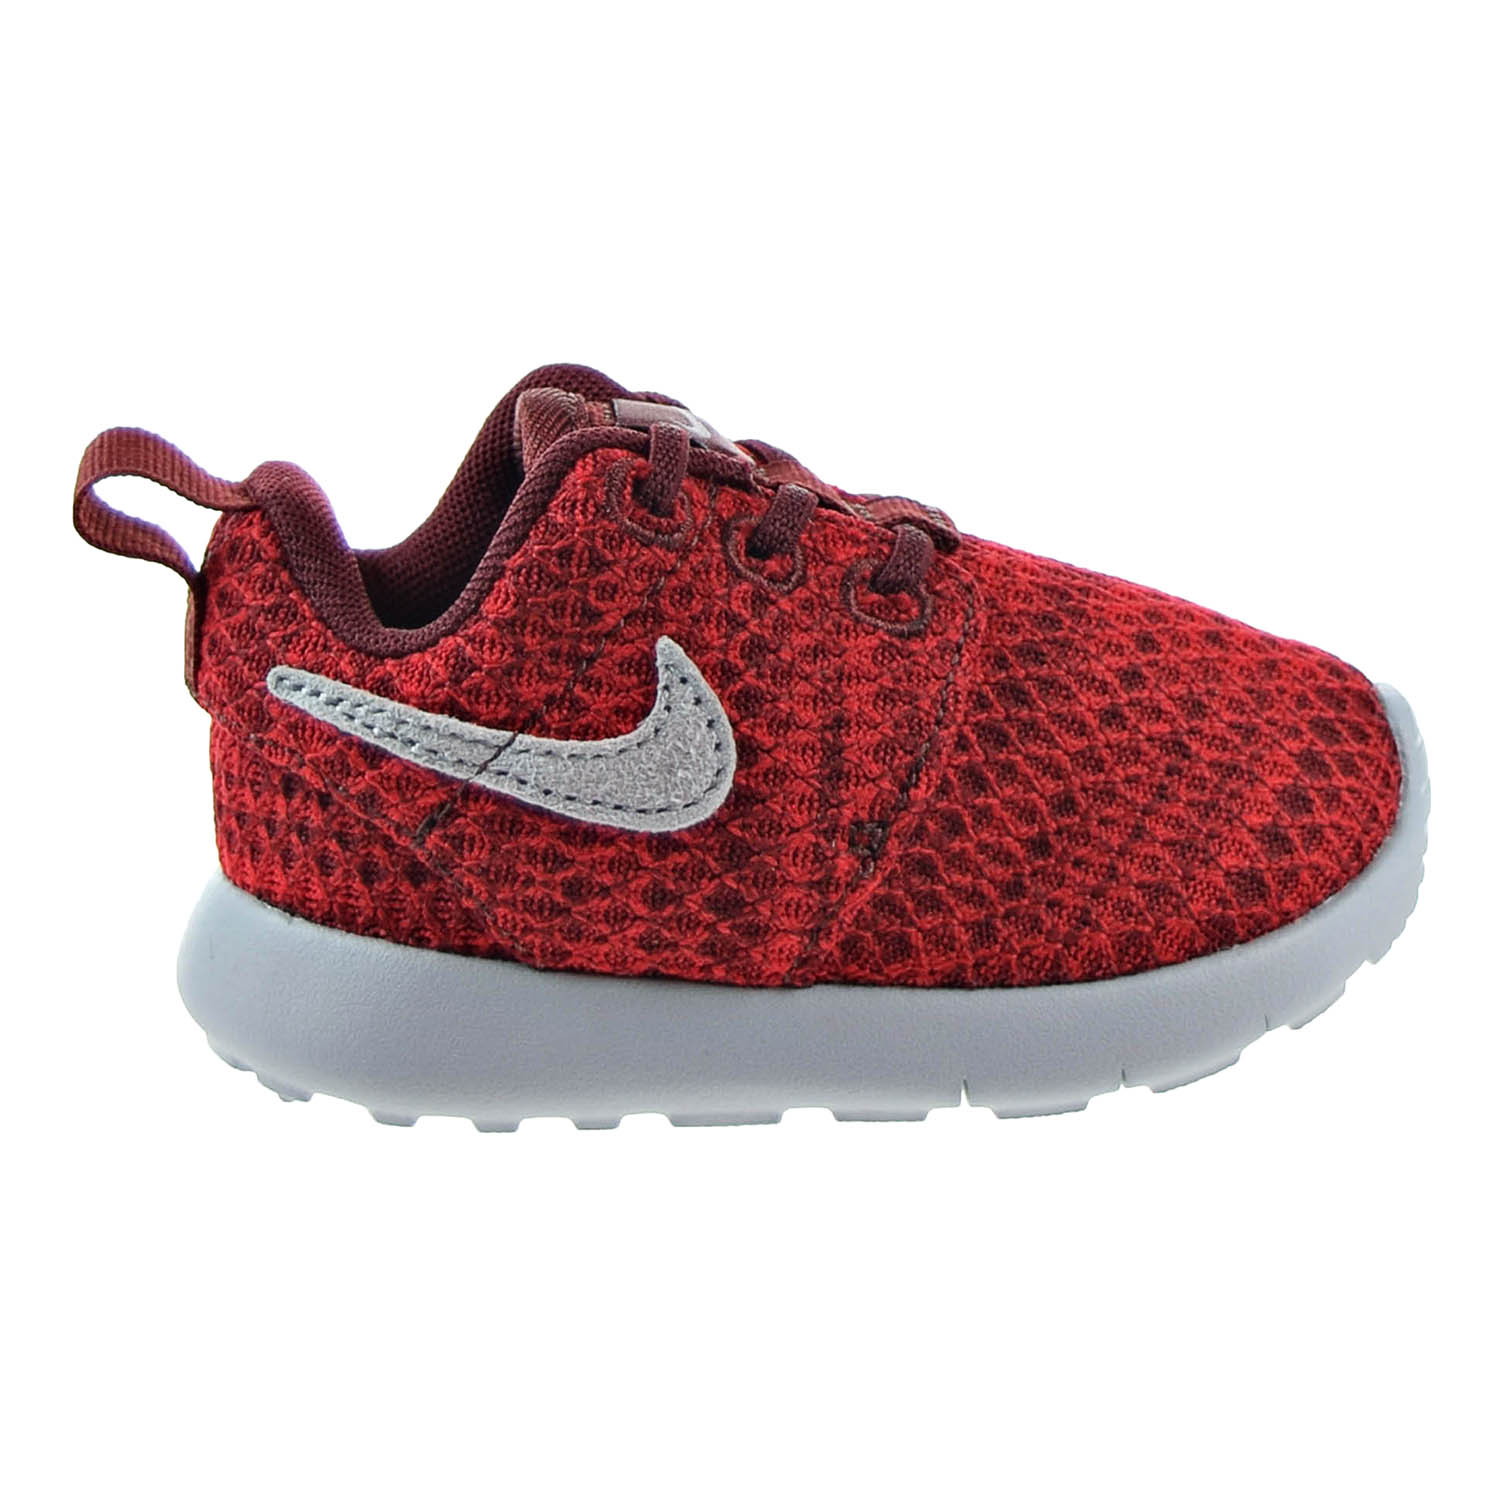 new product 719e4 60e00 ... canada nike roshe one tdv infant toddlers shoes dark team red wolf grey  749430 607 walmart